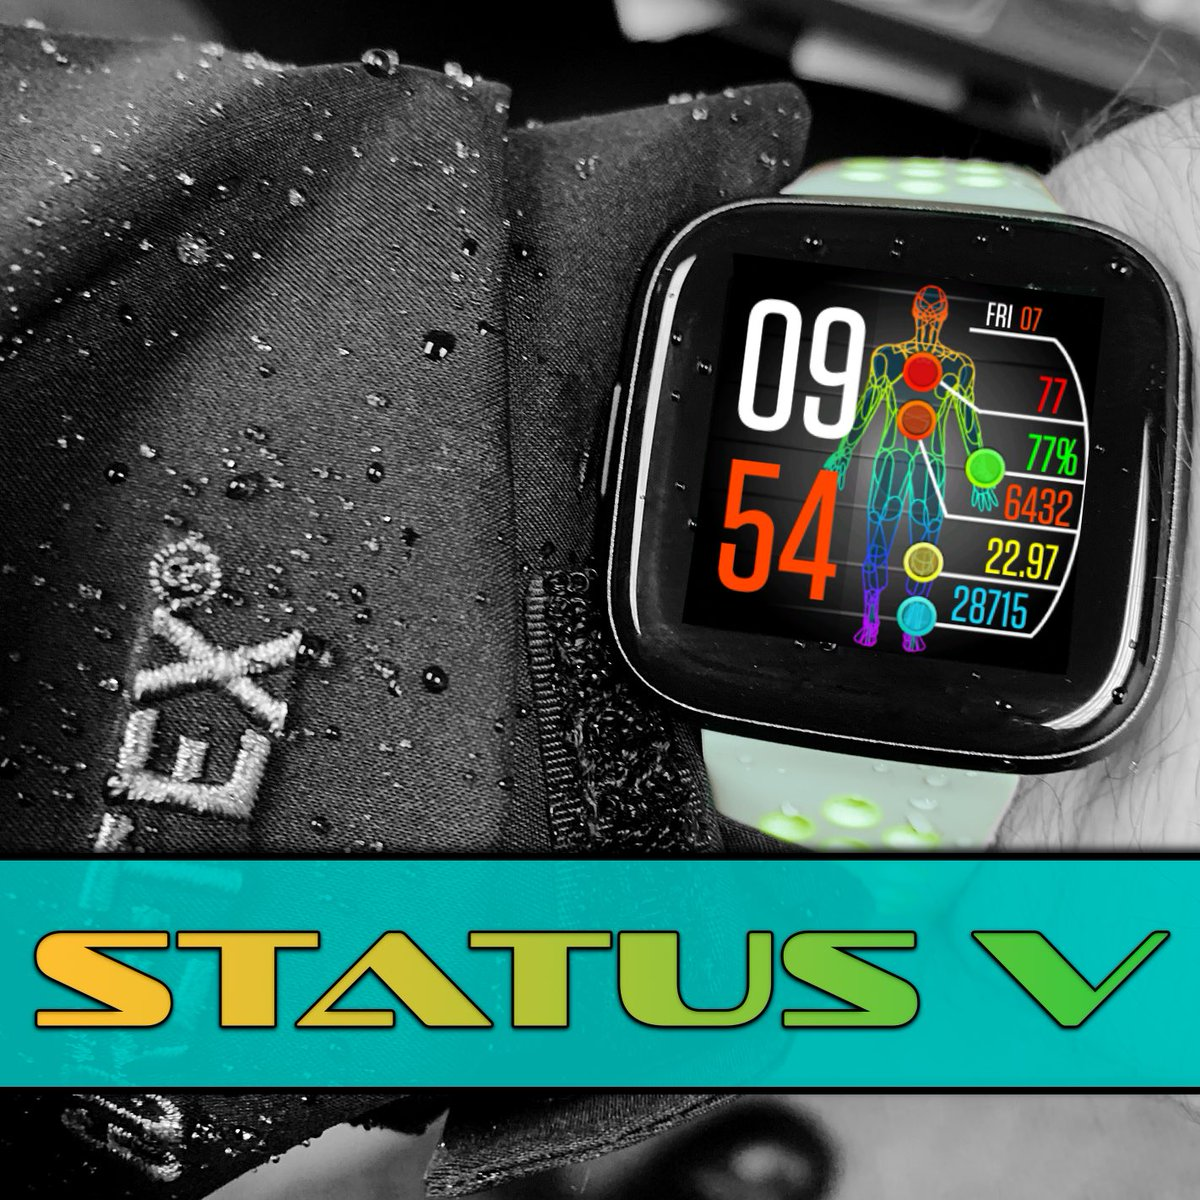 """Status V Update: """"We can rebuild it. We have the technology... Better, stronger, faster."""" https://gallery.fitbit.com/details/8ffadeb6-abe6-4ea7-88e4-22e30d78b488…  #made4fitbit #fitbitversa #fitbitversa2 #fitbit #fitness #clockface #watchface @NiVZpic.twitter.com/GhkaCfaNyG"""